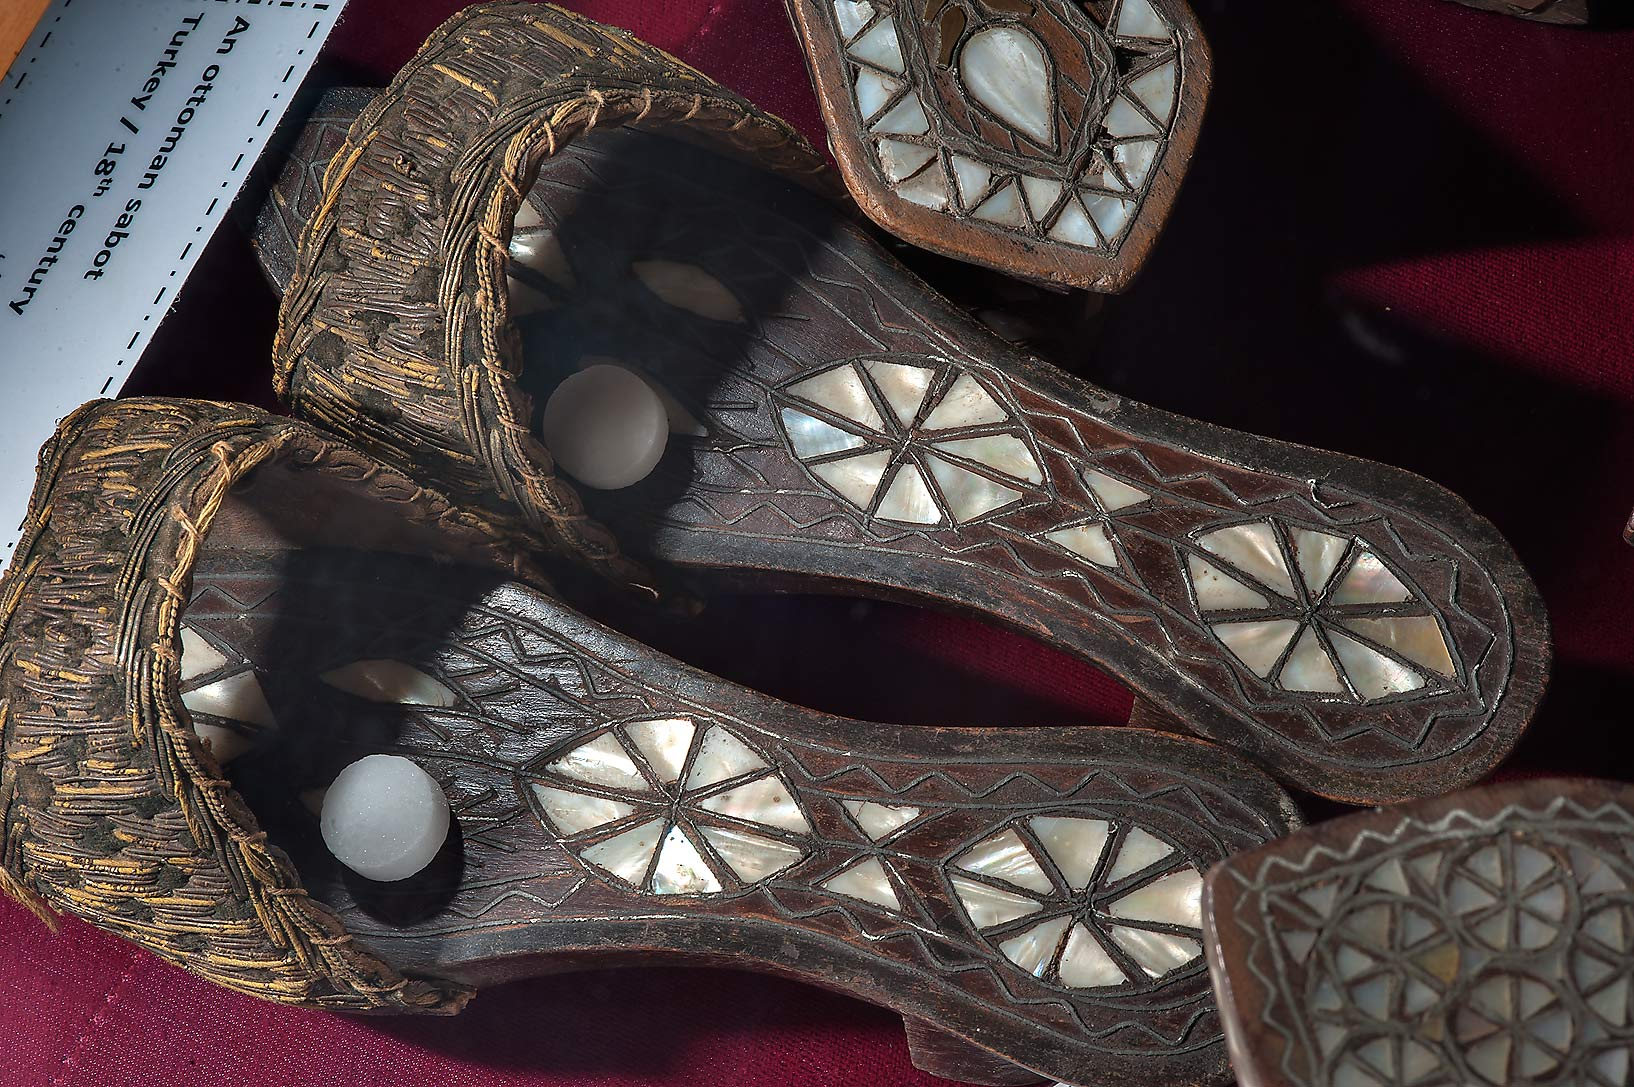 Ottoman sabot slippers decorated by mother-of...Thani Museum near Al-Shahaniya. Qatar